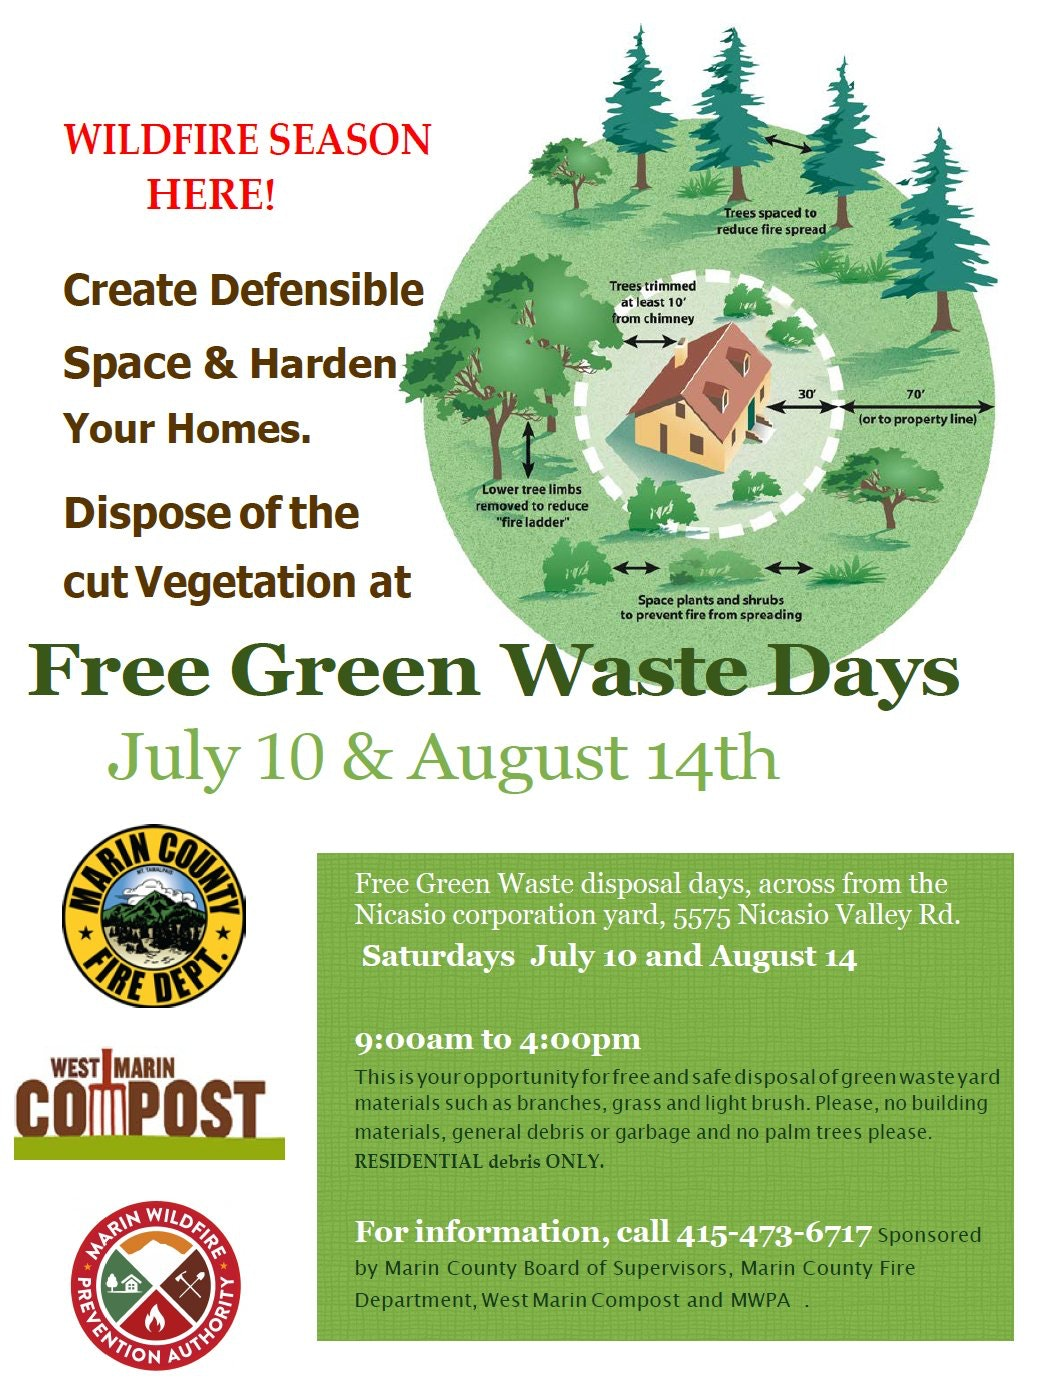 Free Green Waste Days July 10th and August 14th. Location at West Marin Compost in Nicasio 9:00am to 4:00pm